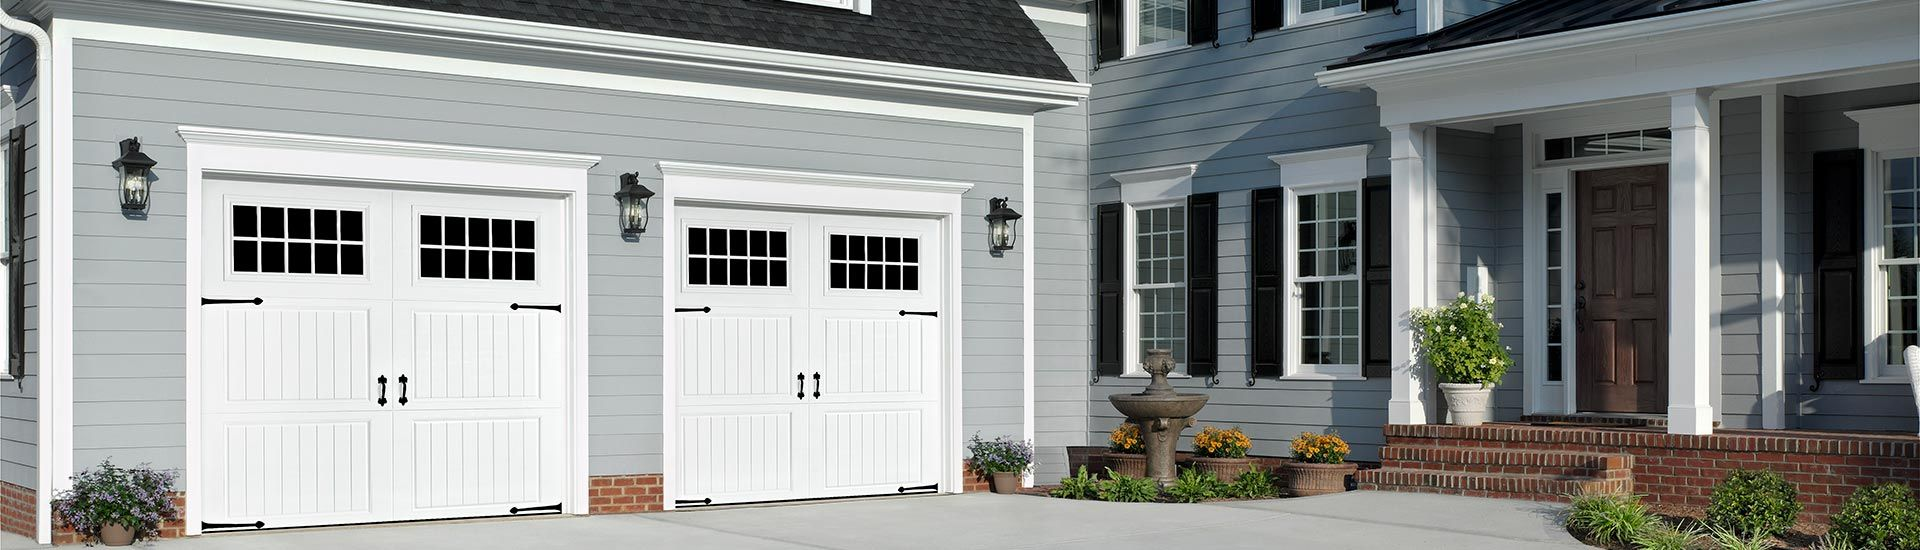 Get Affordable And Professional Installation And Repair Of Garage